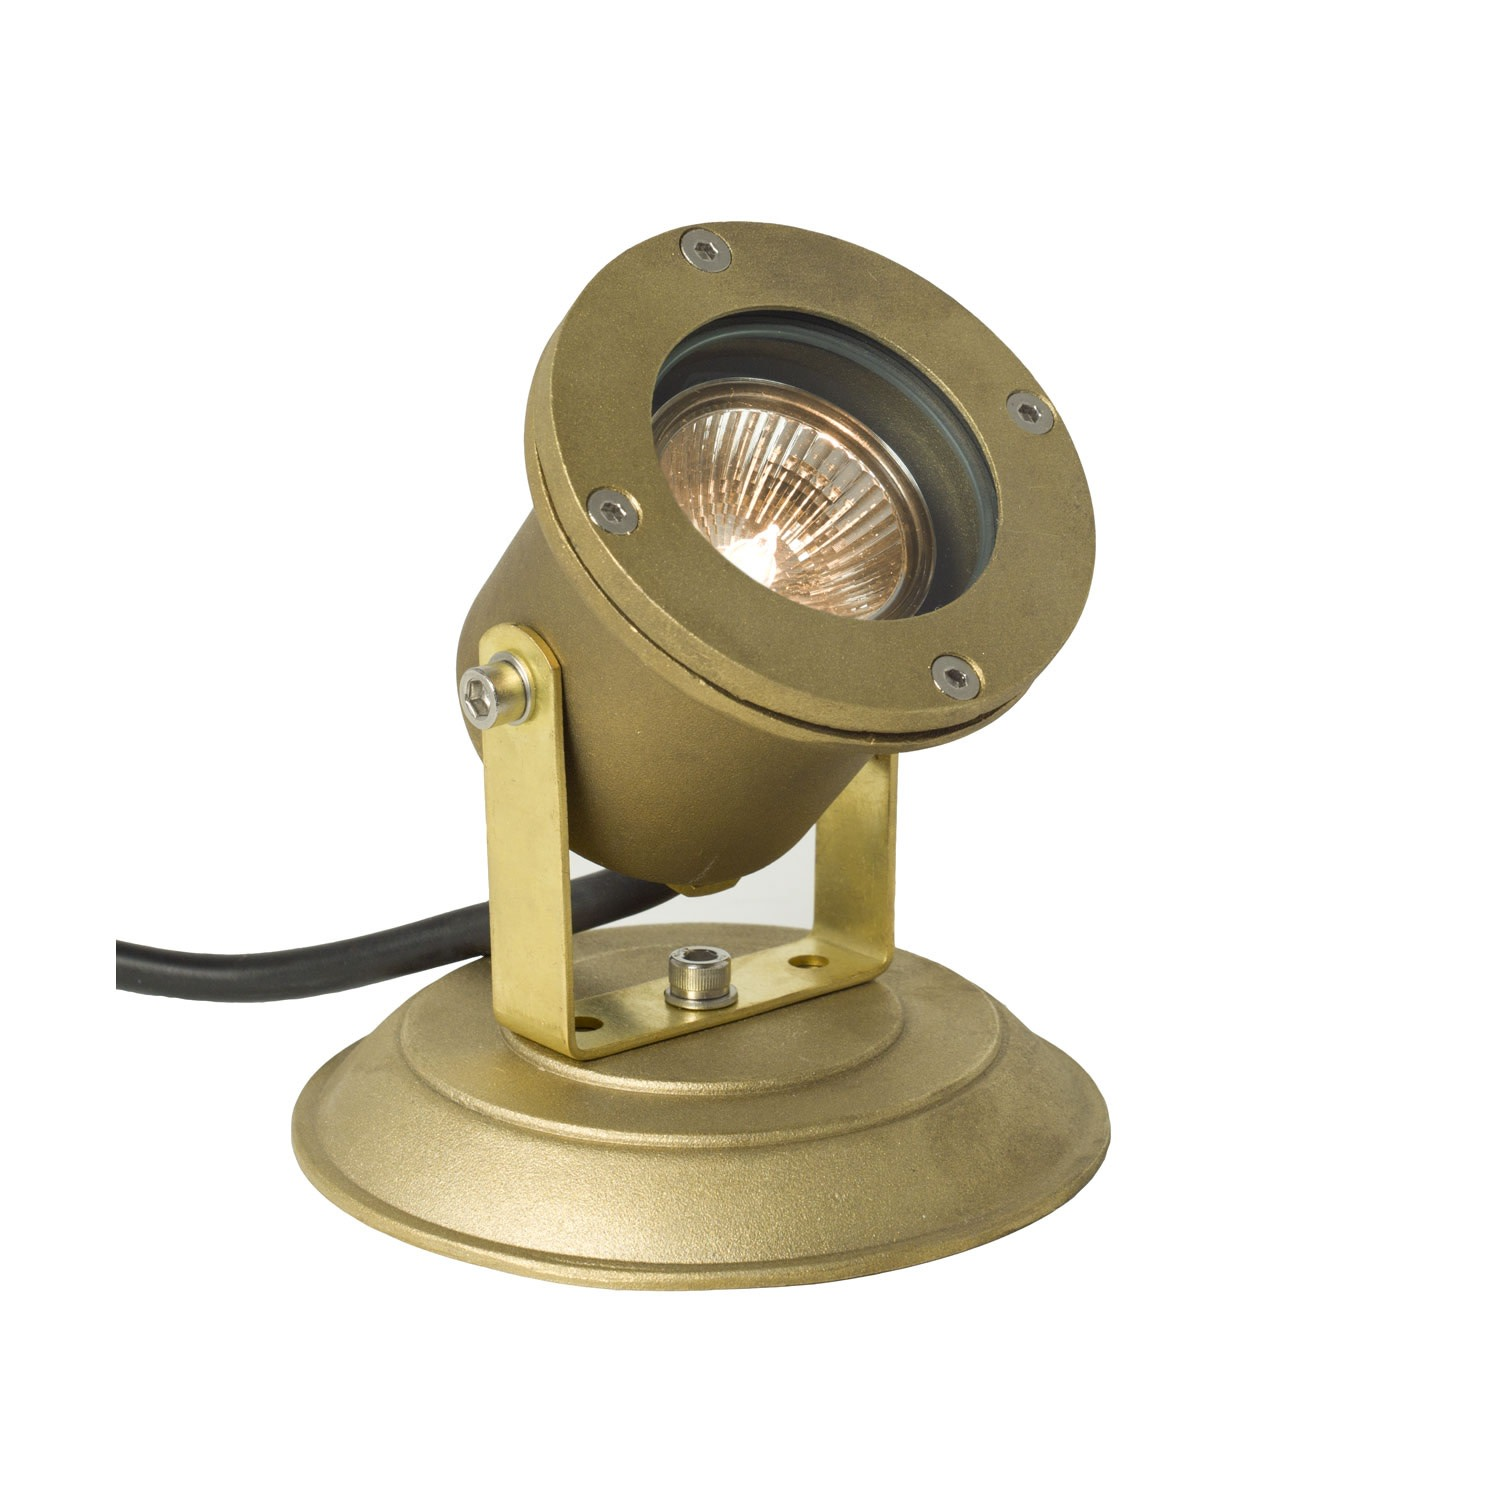 Spotlight for Submerged or Surface Use 7604 Brass